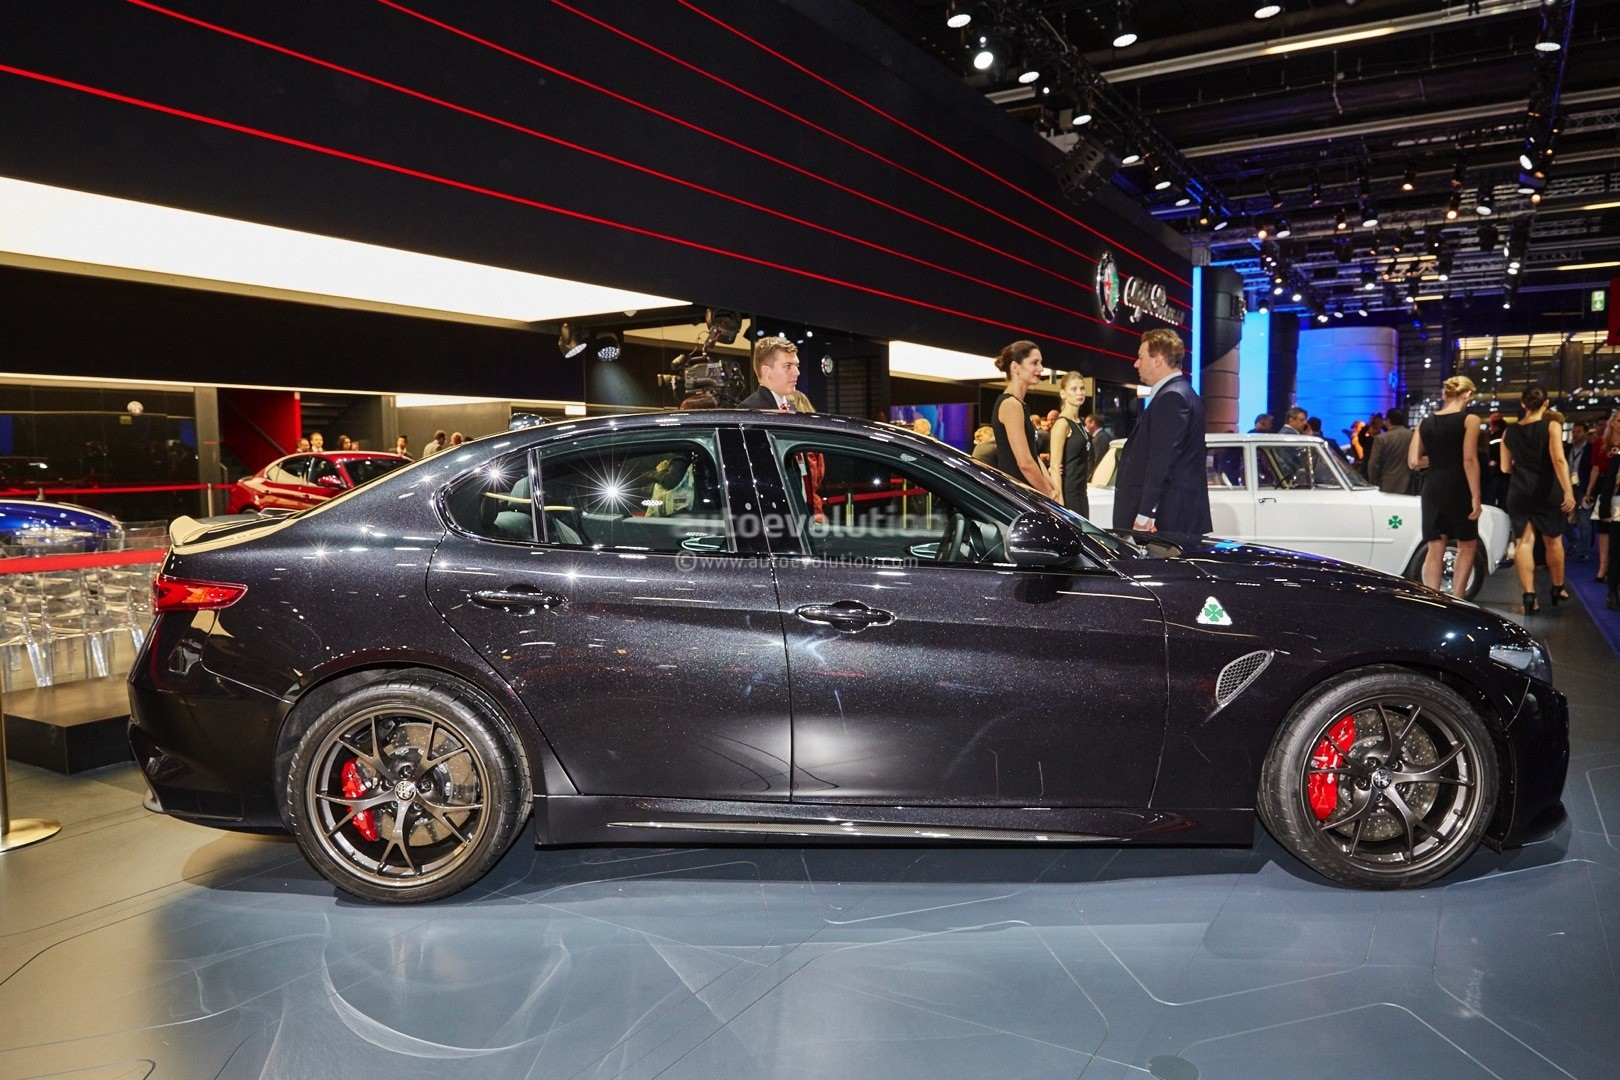 Alfa Romeo Giulia Qv Now Fastest Sedan On Ring Lands In Frankfurt For Eur Live Photos